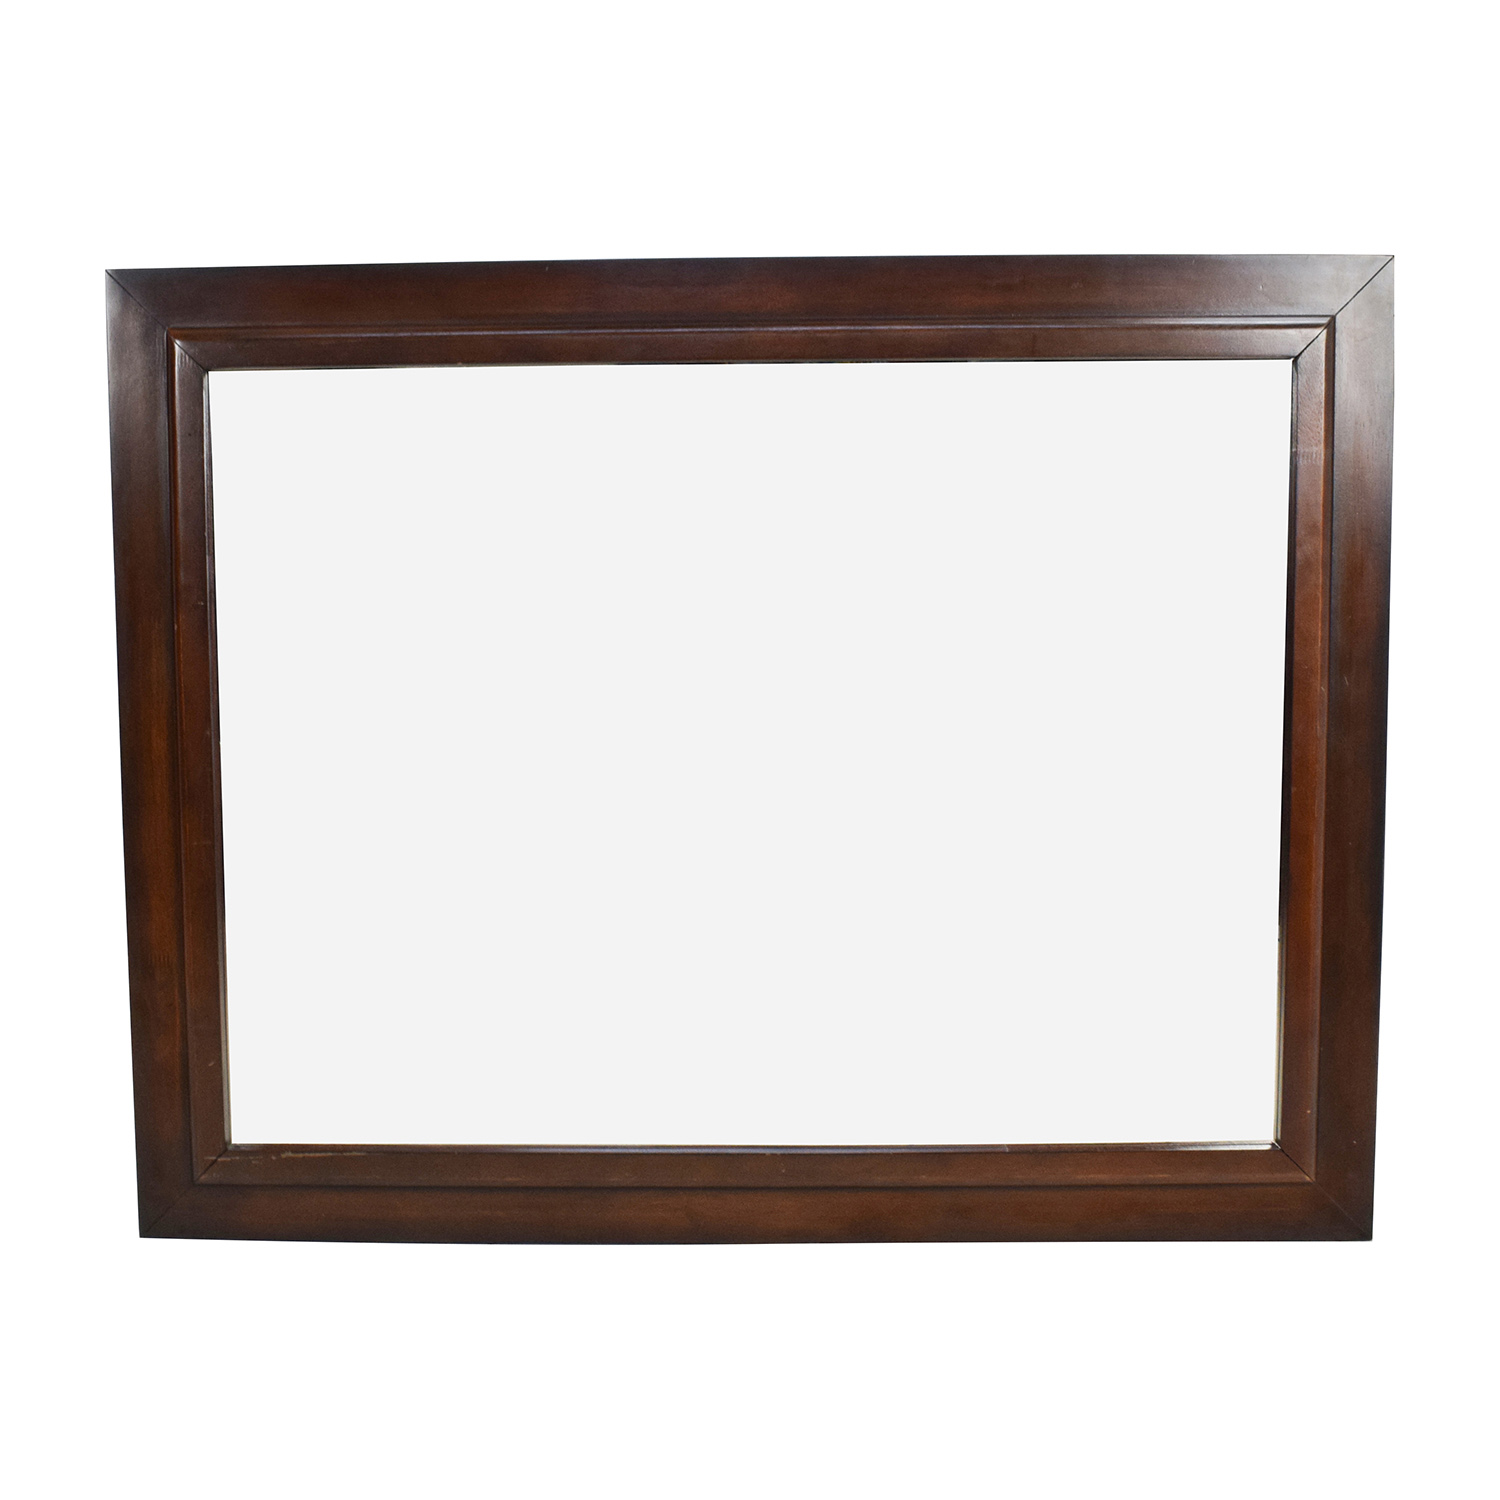 Wooden framed decorative wall mirror 80 off large square for Tall framed mirror